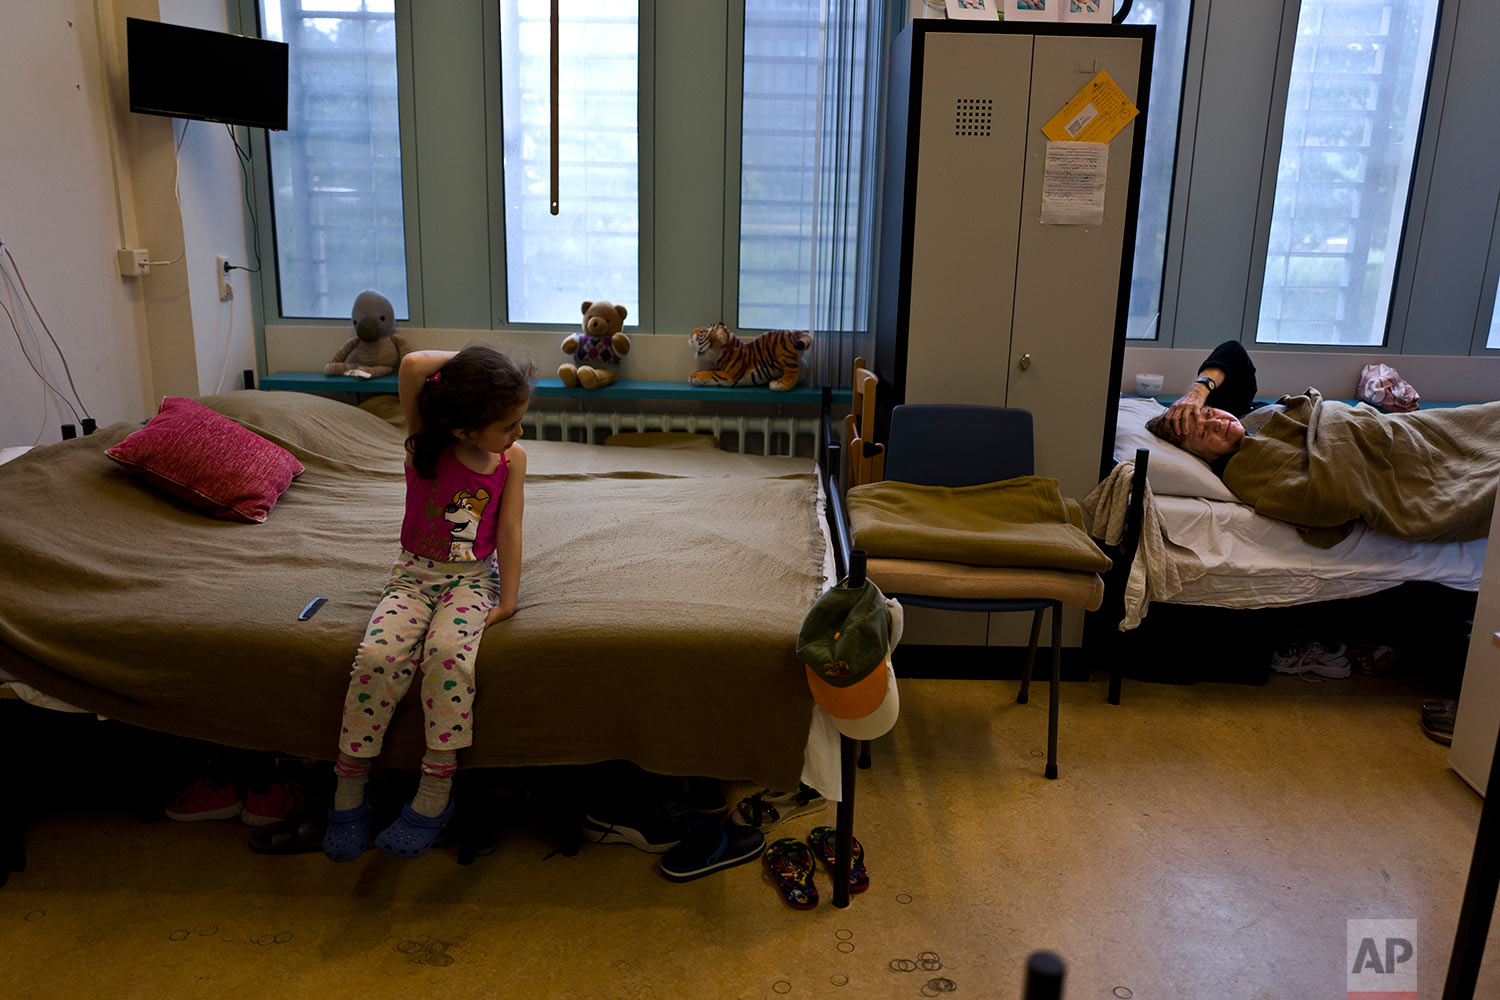 In this Friday, June 30, 2017 photo, refugee Nadia Gattas, 82, from Deir el-Zour, Syria, right, lies on a bed in her room in the former prison of Bijlmerbajes in Amsterdam, Netherlands. (AP Photo/Muhammed Muheisen)